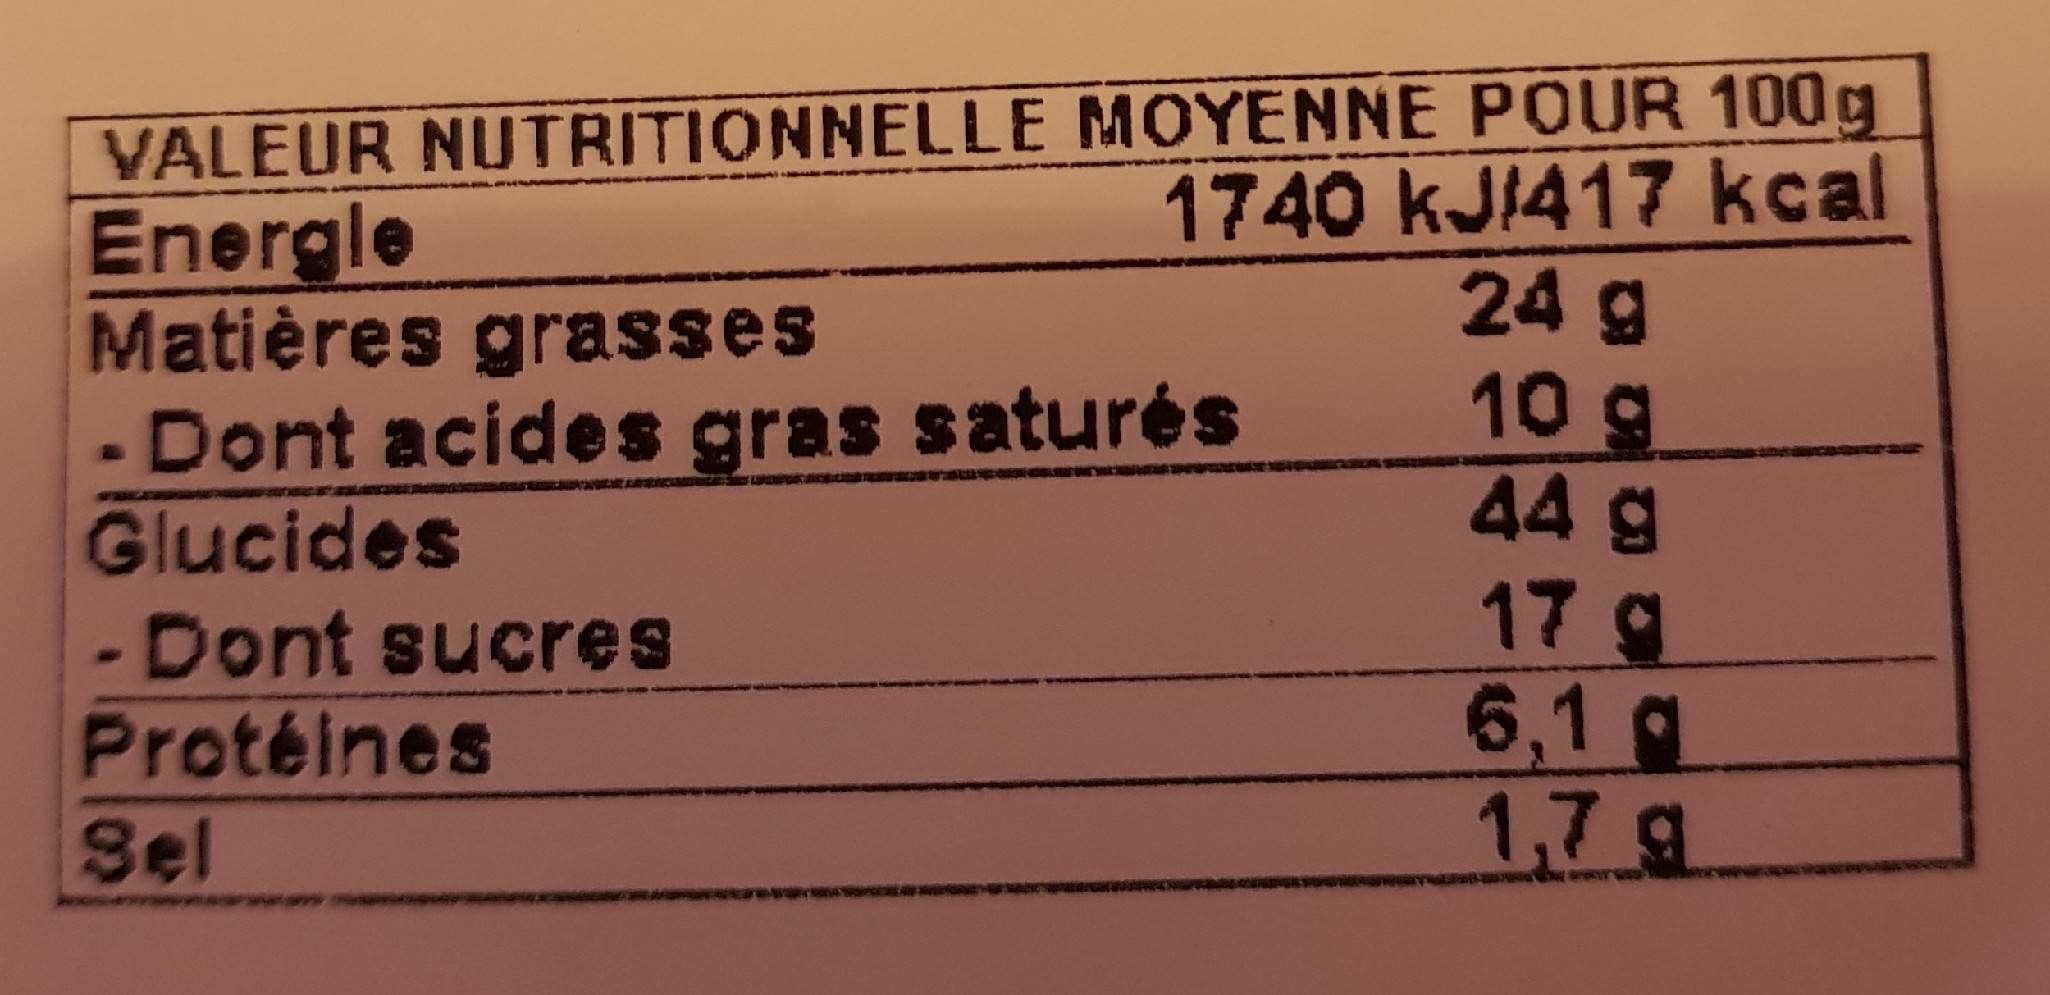 4 Doony's Sucre - Informations nutritionnelles